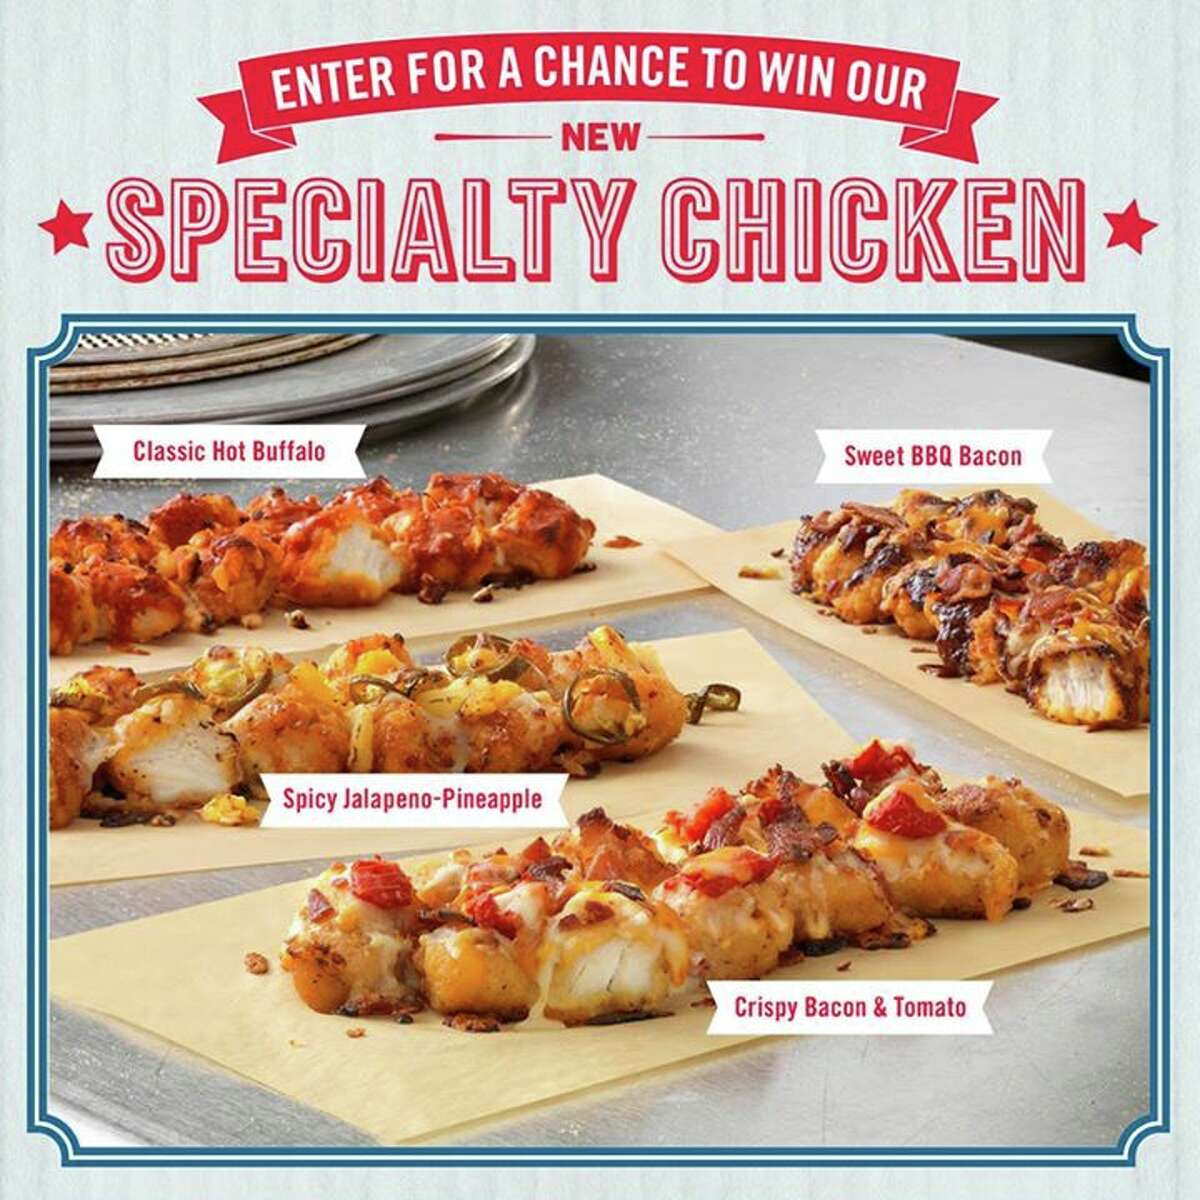 """Domino's Pizza announced in June the launch of the """"specialty chicken,"""" an apparent pizza with a white chicken canvas replacing what would have been a crust. Comes in four flavors of cholesterol surge. Domino's literally headlines press release with, """"Failure is an option."""" Glad you're open to that, Domino's."""